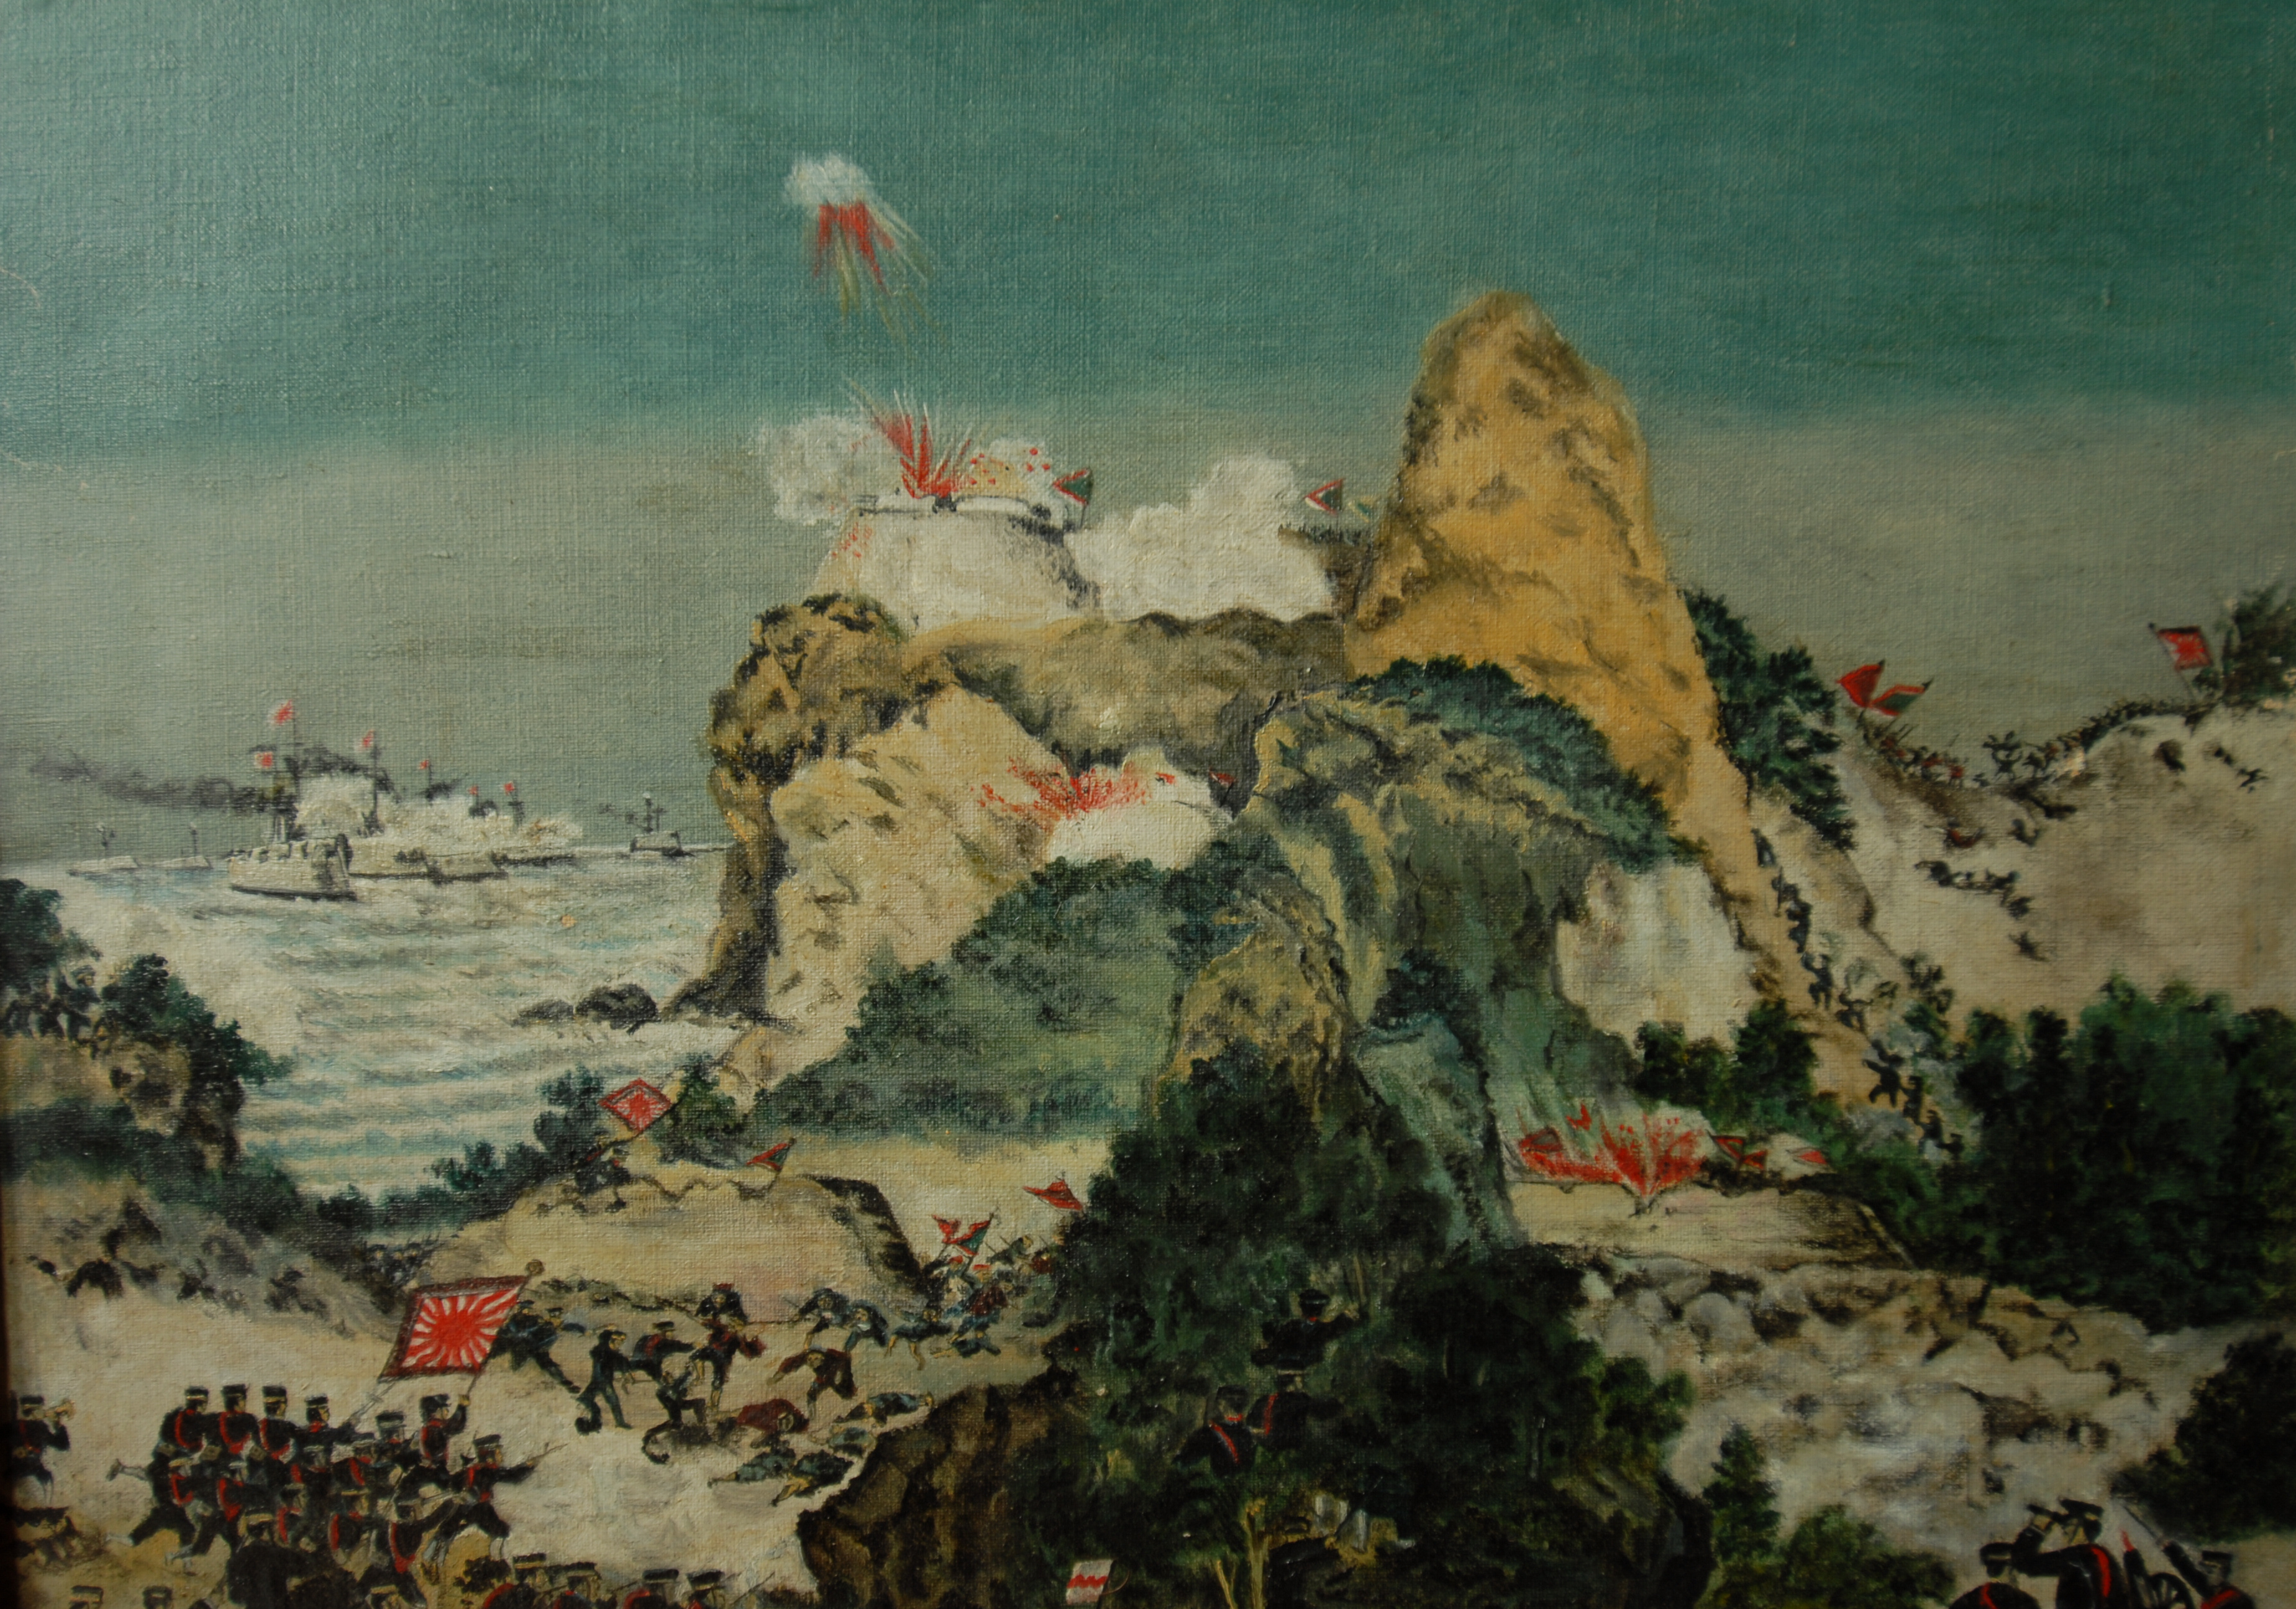 File:Engagement first sino-japanese war (oil painting) jpg